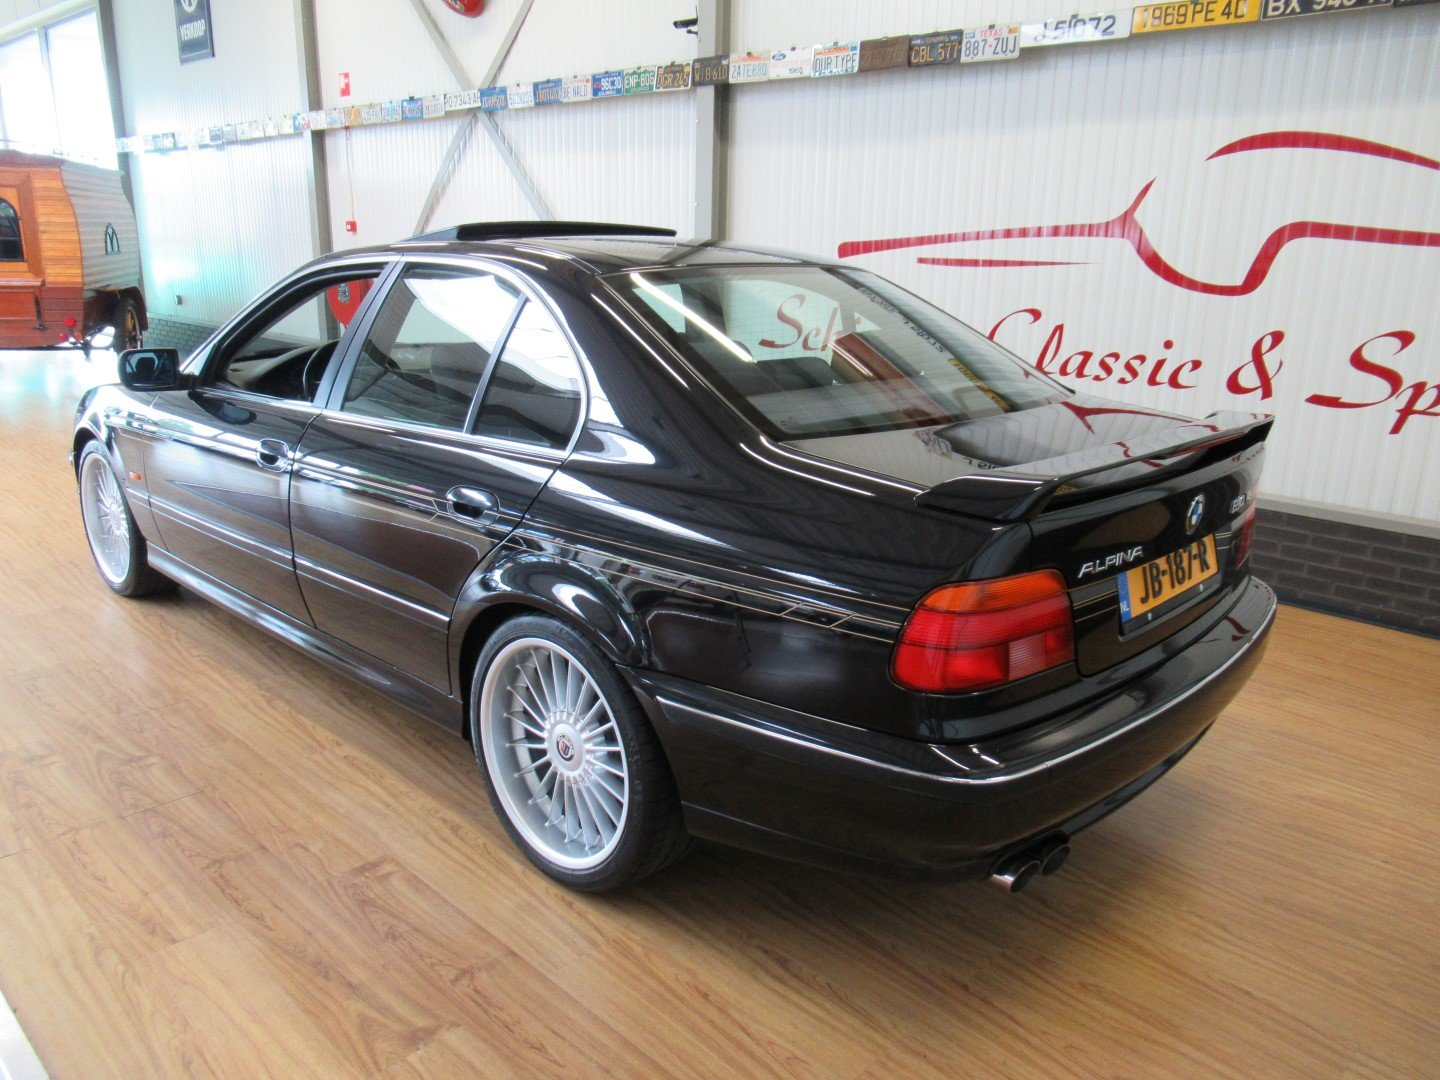 1999 Alpina B10 V8 Nr.555 For Sale (picture 3 of 6)